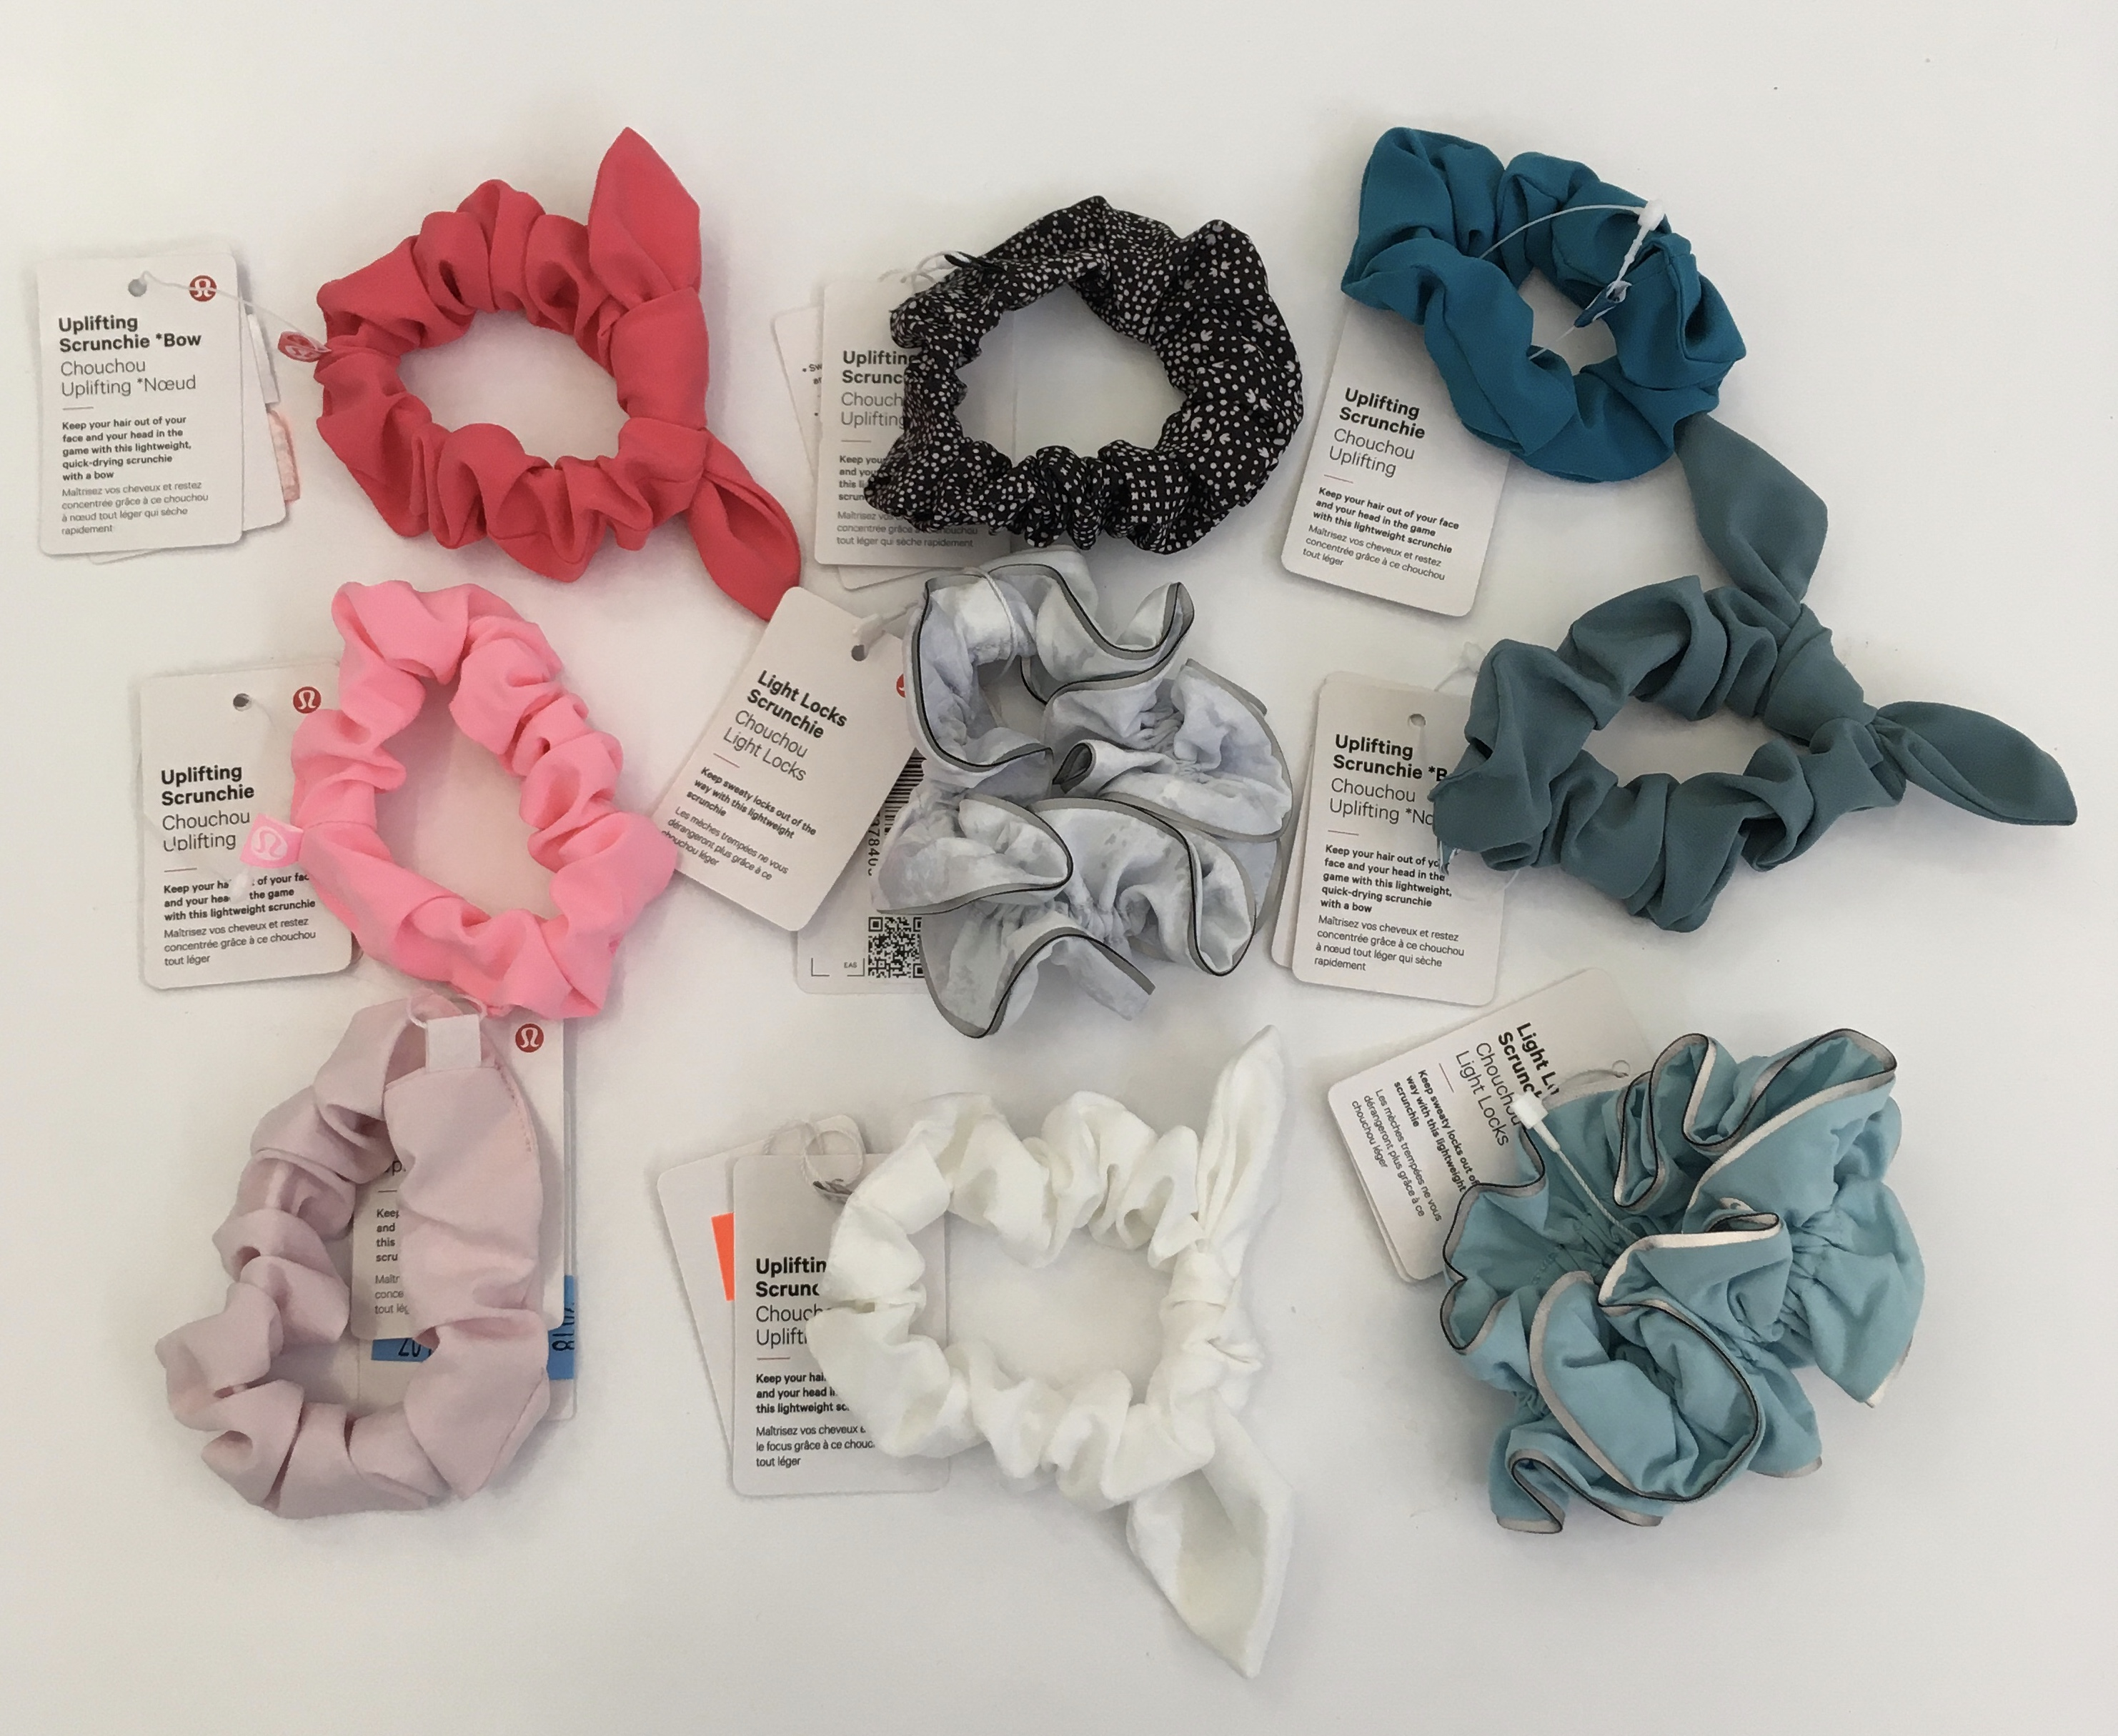 9 scrunchies on display, various colors, w/ exhibit tags.